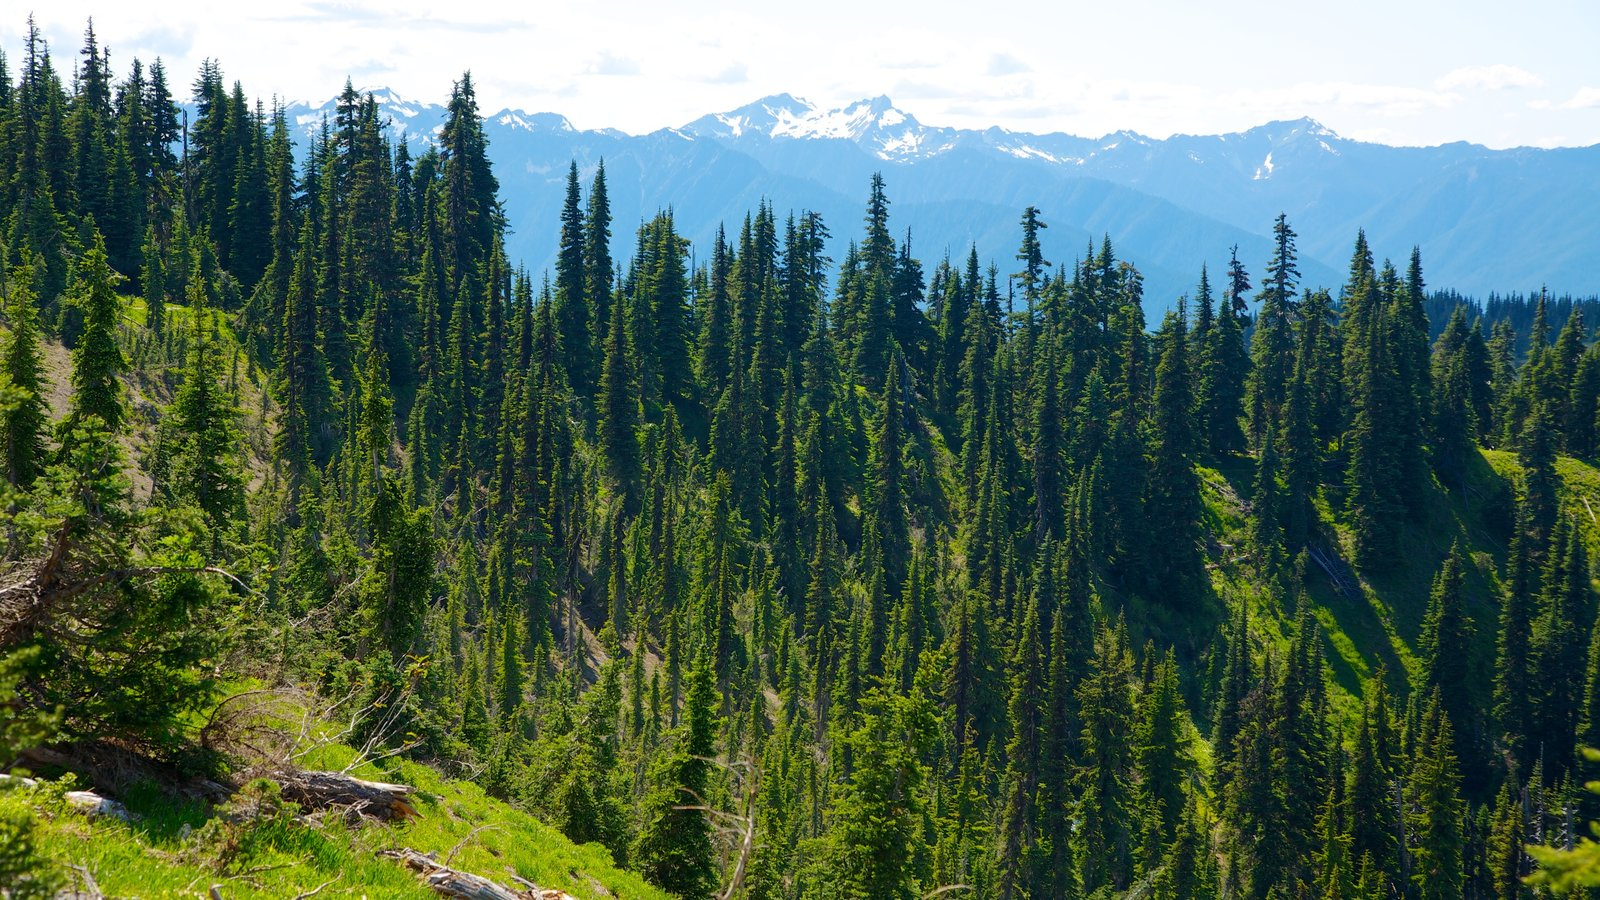 Hurricane Ridge Visitors Center which includes forest scenes, mountains and landscape views